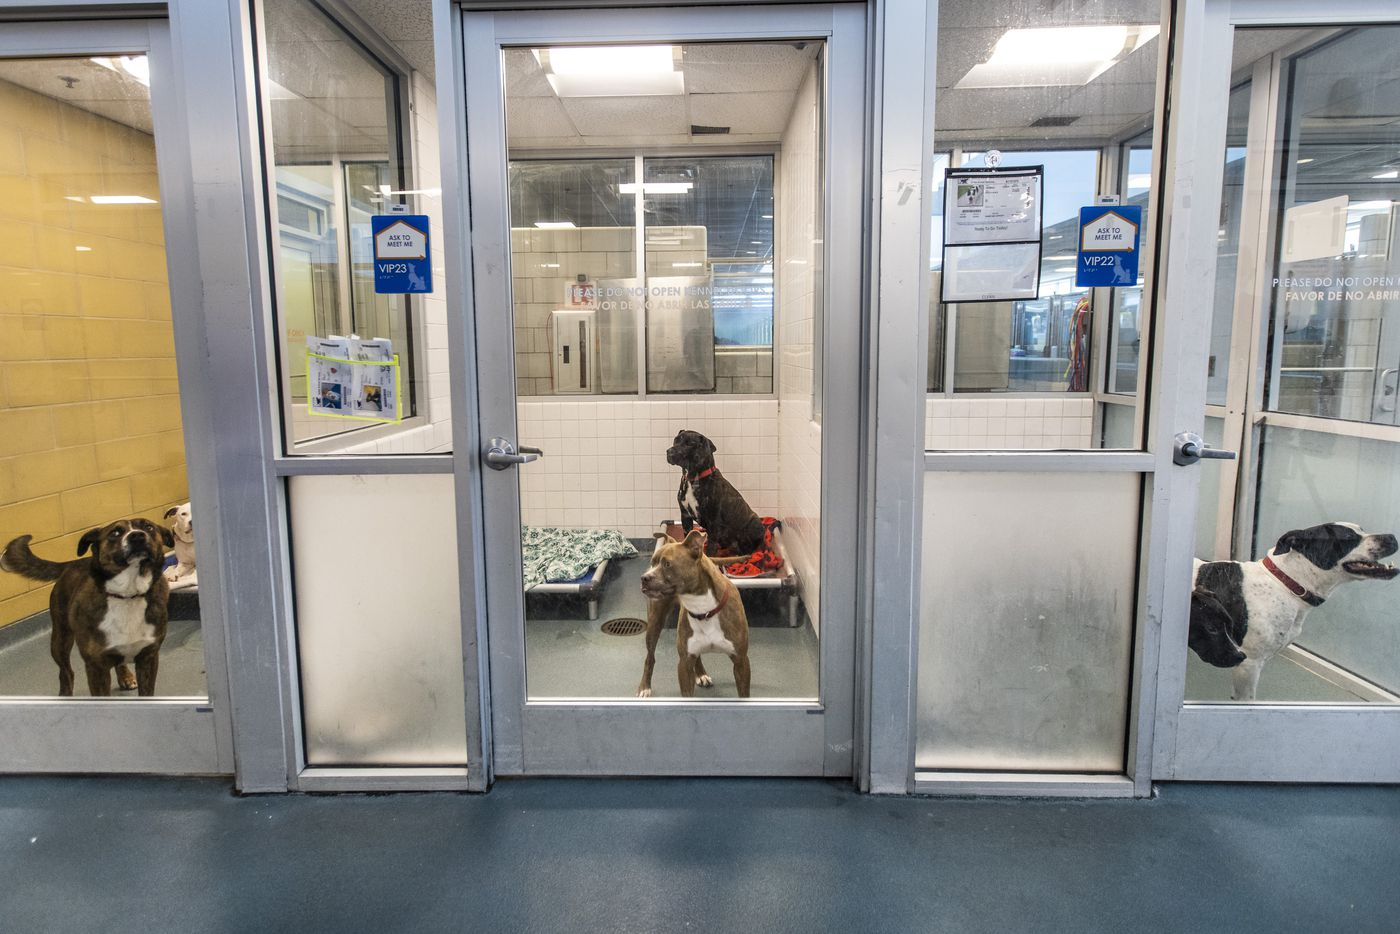 Paired dogs occupy the kennels at the Dallas Animal Services shelter in Dallas on Wednesday, May 26, 2021. Dallas Animal Services is running out of kennels for medium and large dogs, and has made an urgent call for people to help by fostering or adopting a dog. (Lynda M. González/The Dallas Morning News)